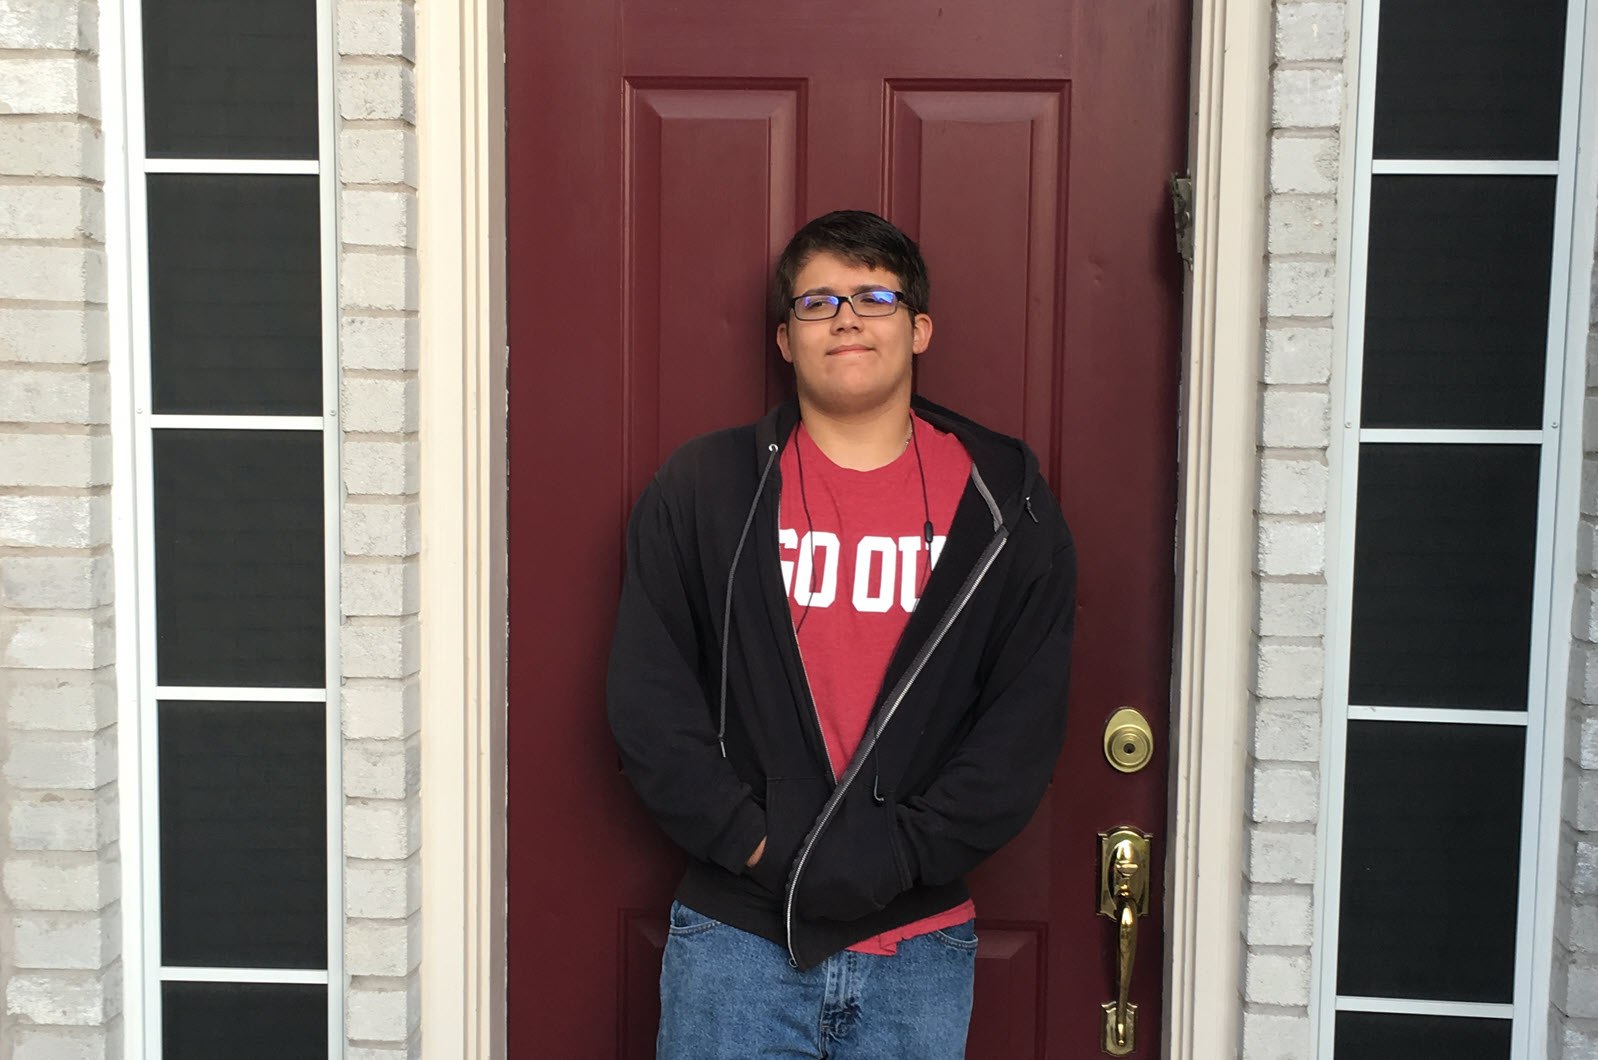 Son in front of door wearing GO OU shirt